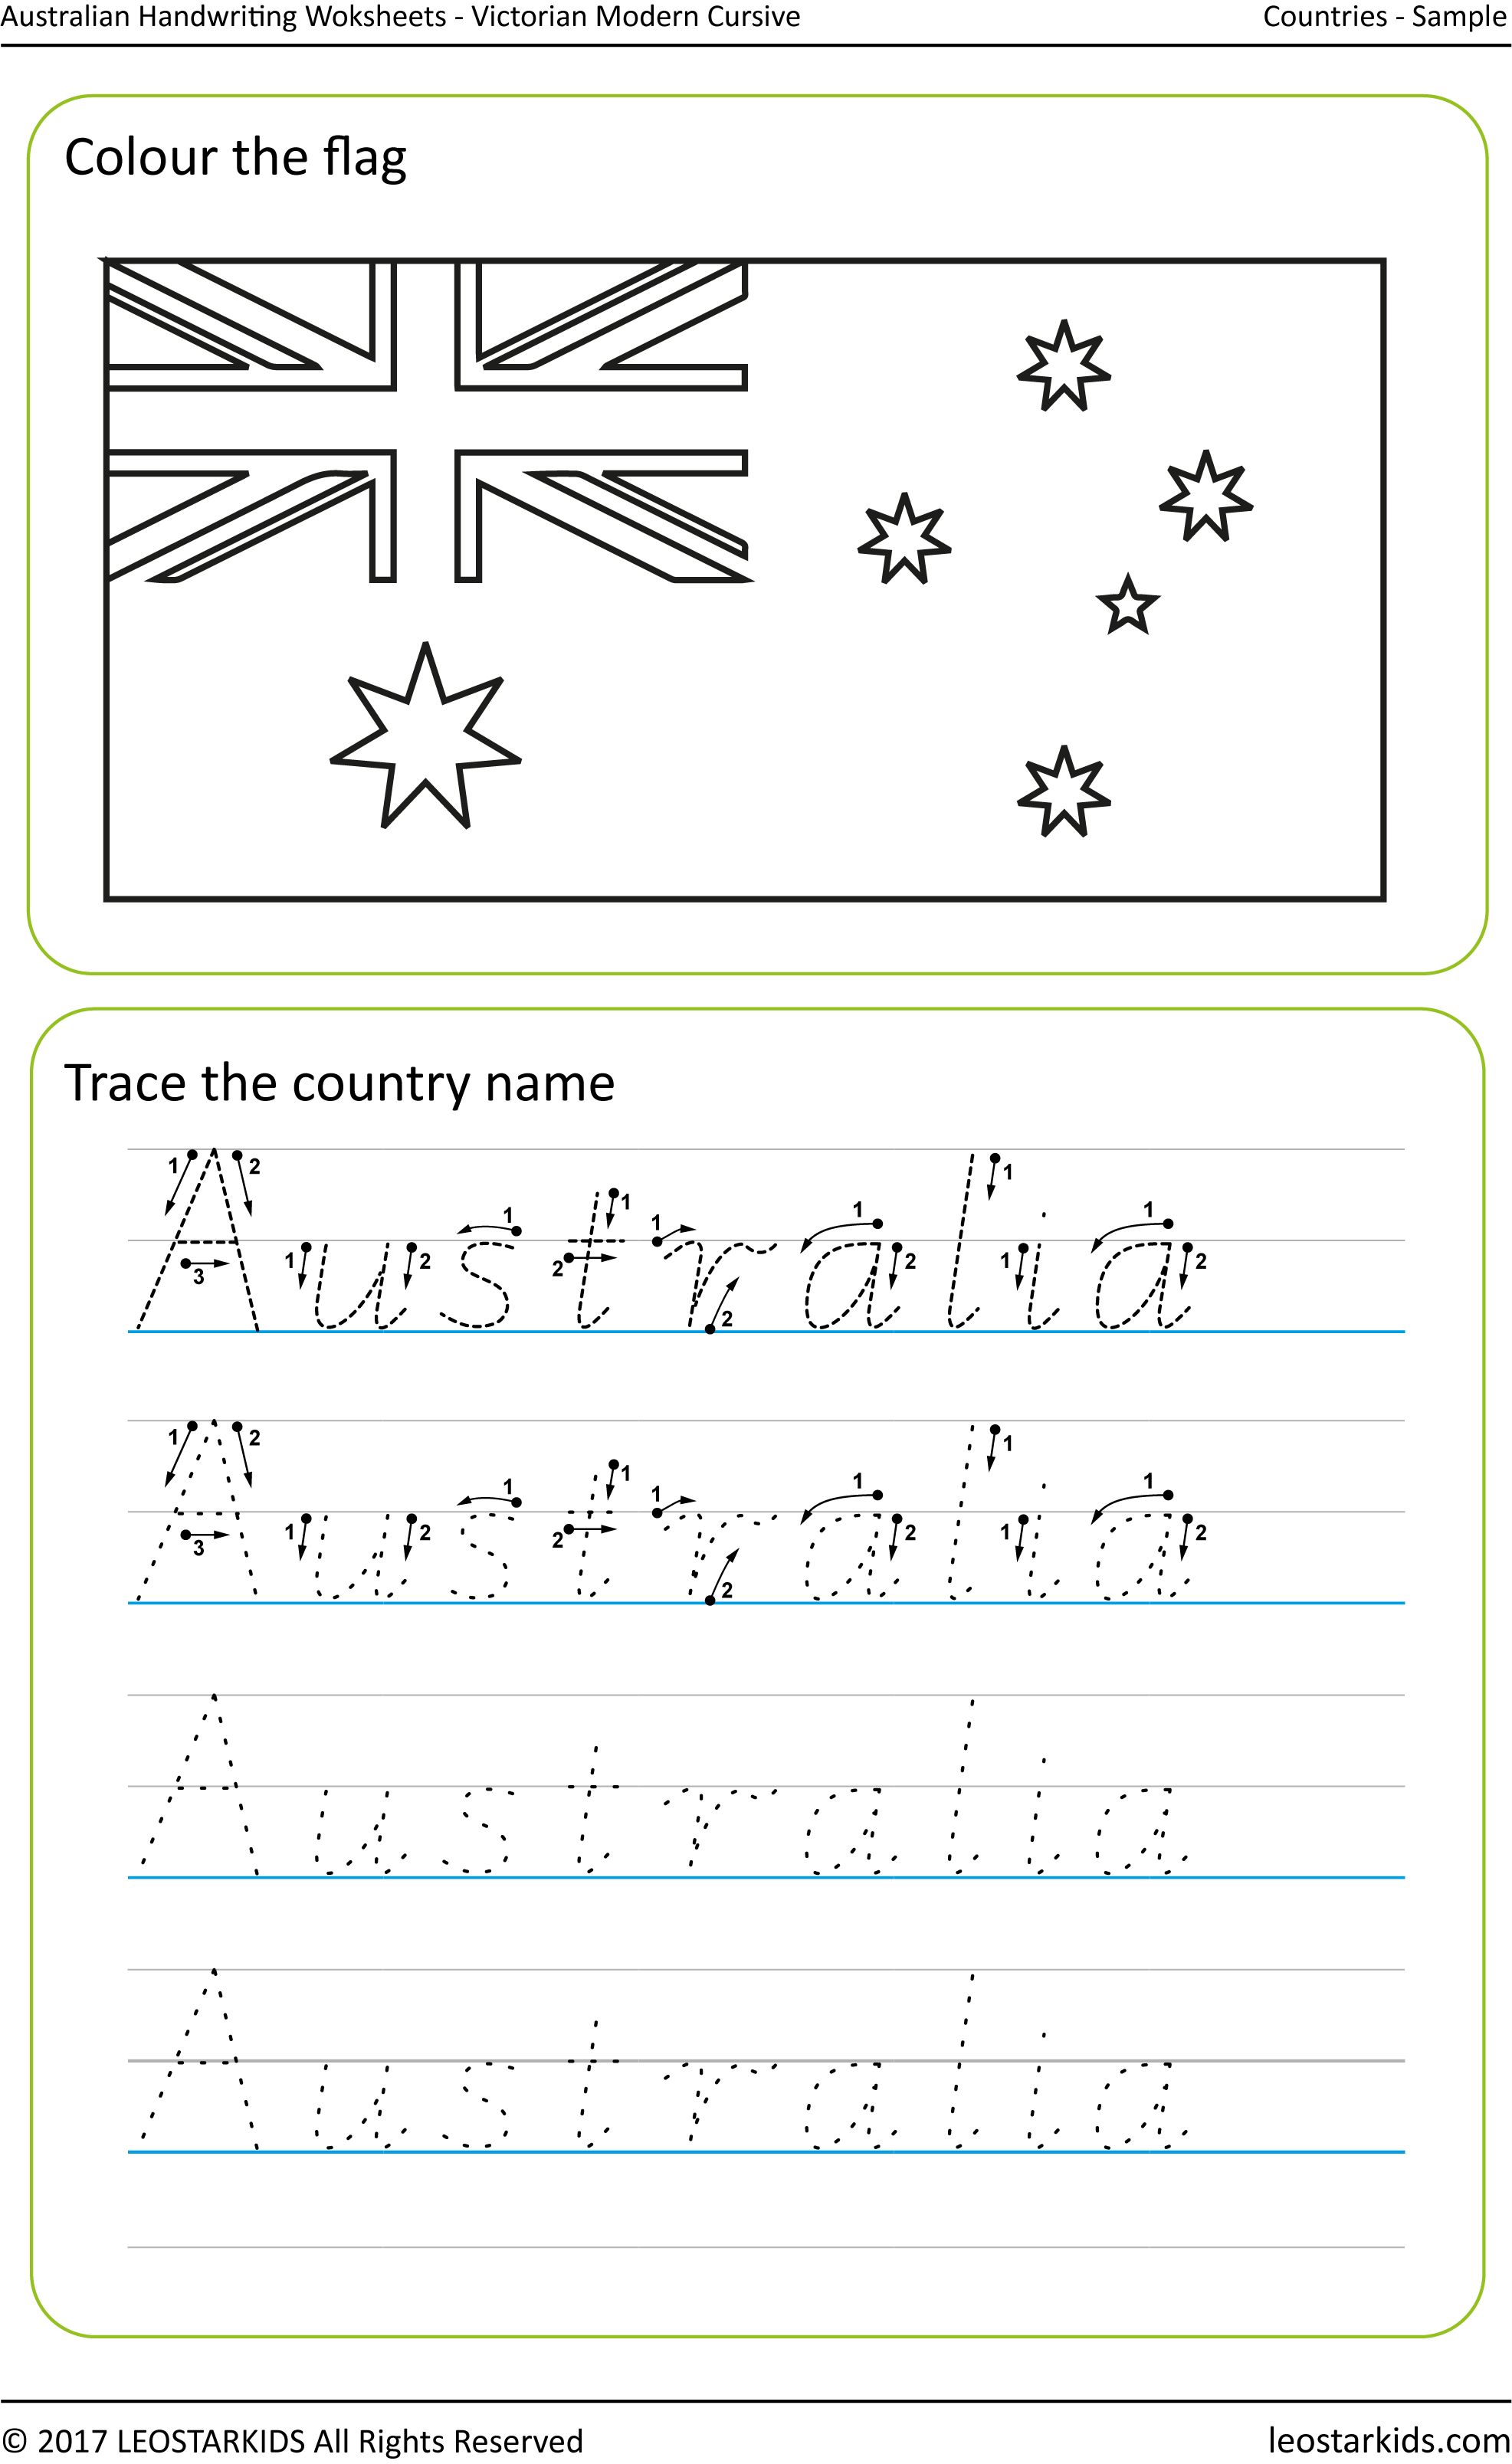 Australian Handwriting Worksheets – Victorian Modern Cursive pertaining to Name Tracing Victorian Modern Cursive